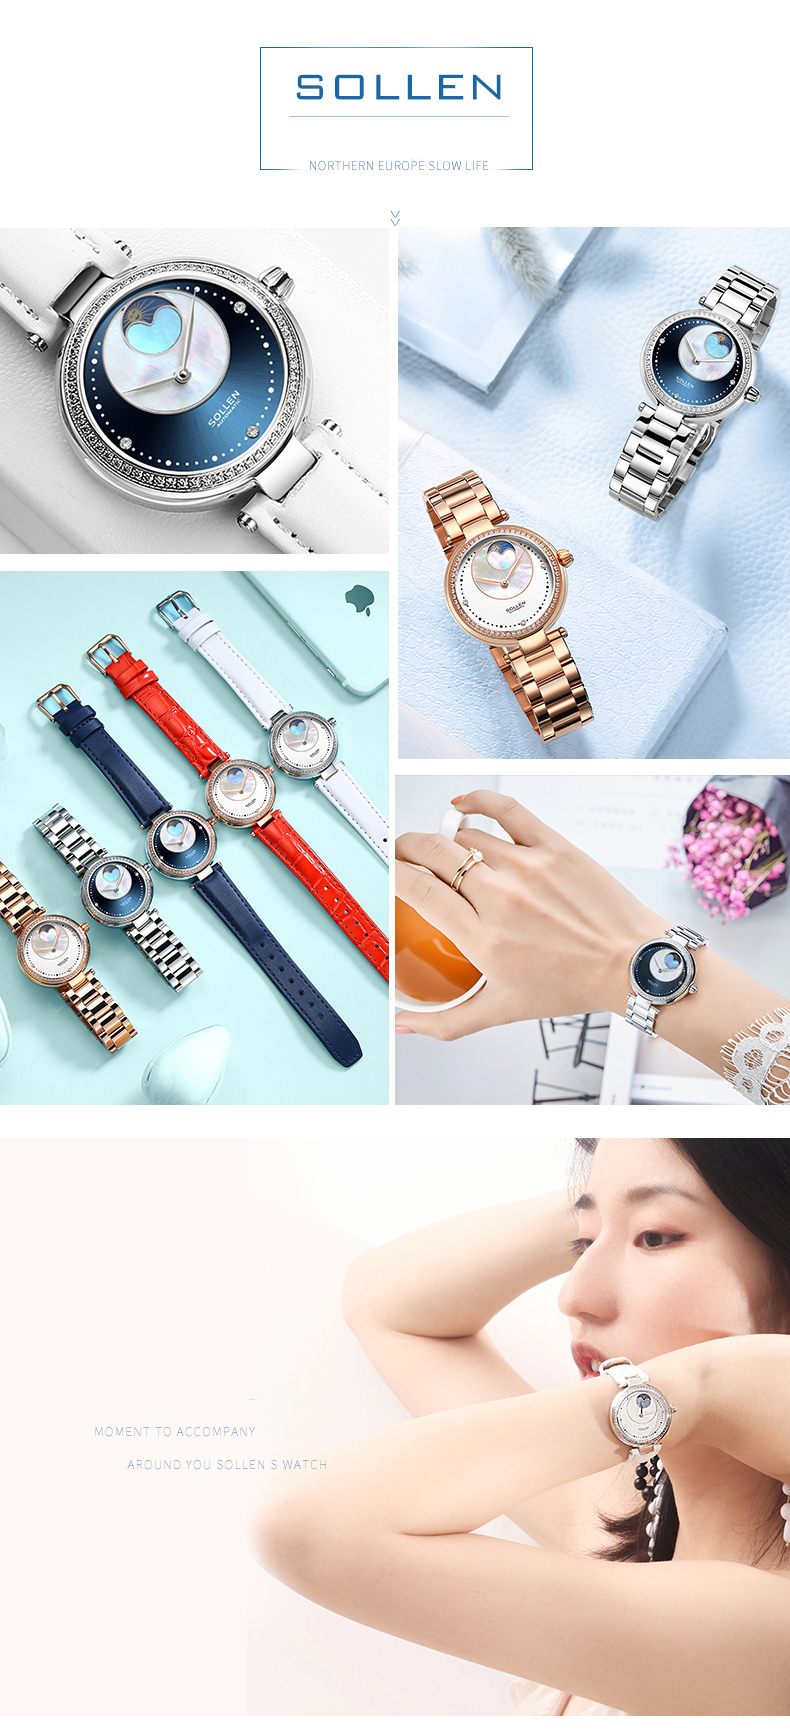 SOLLEN stainless steel watches women luxury gold watch automatic mechanical hand watch hot sale wristwatch fast delivery reloj